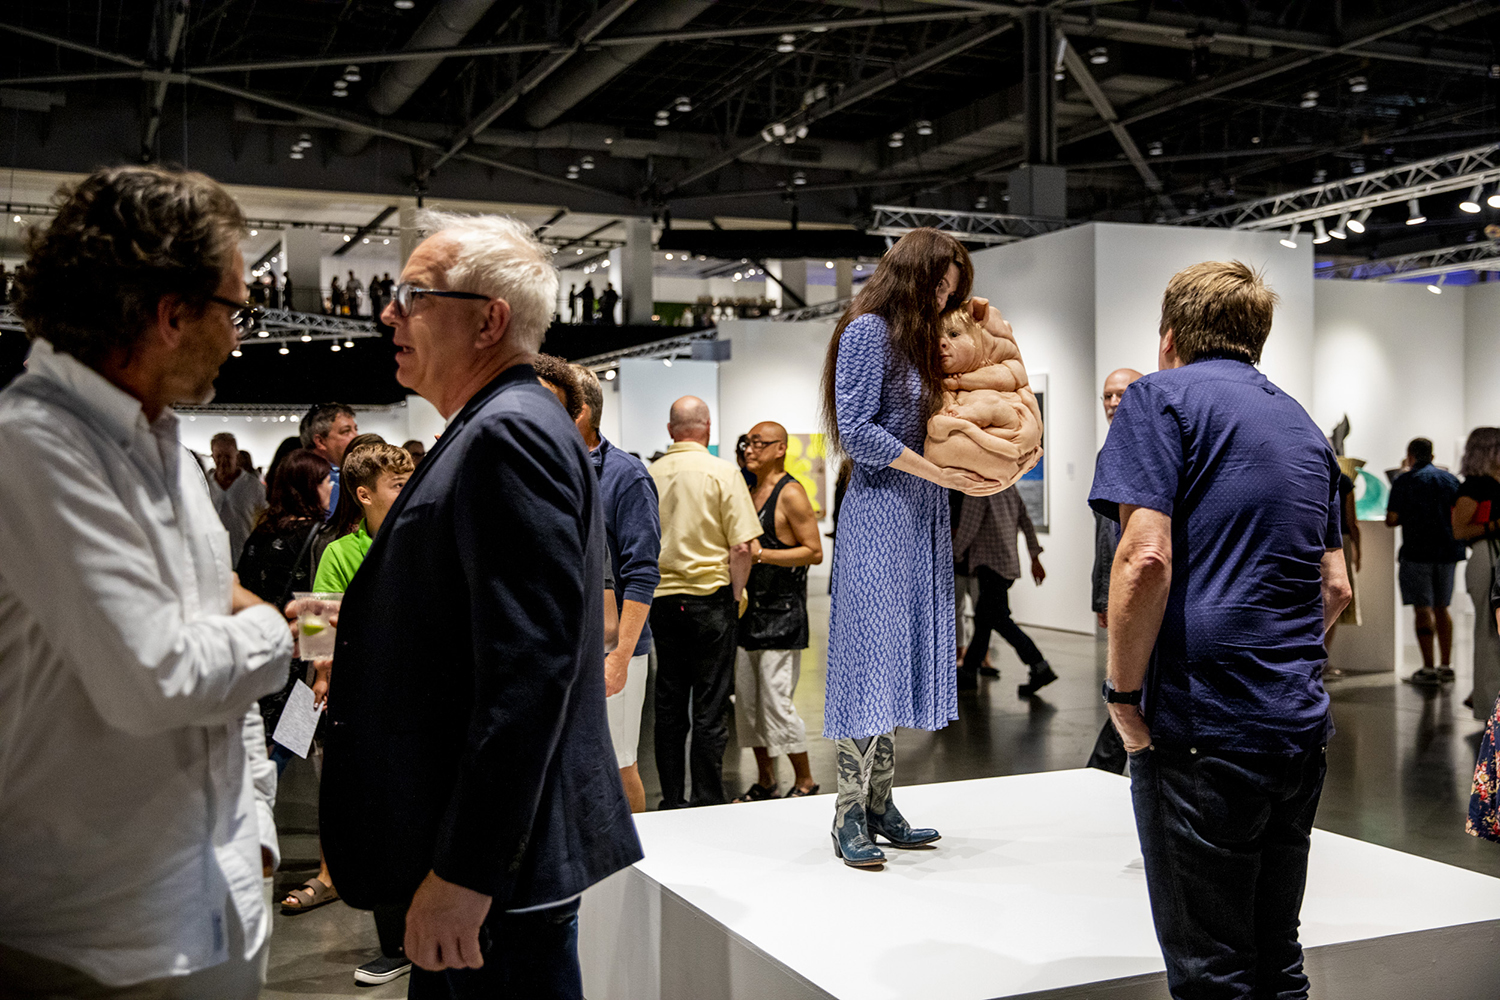 """The Bond and The Loafers"" by Patricia Piccinini during the Seattle Art Fair at CenturyLink Field Event Center on Aug. 1, 2019."